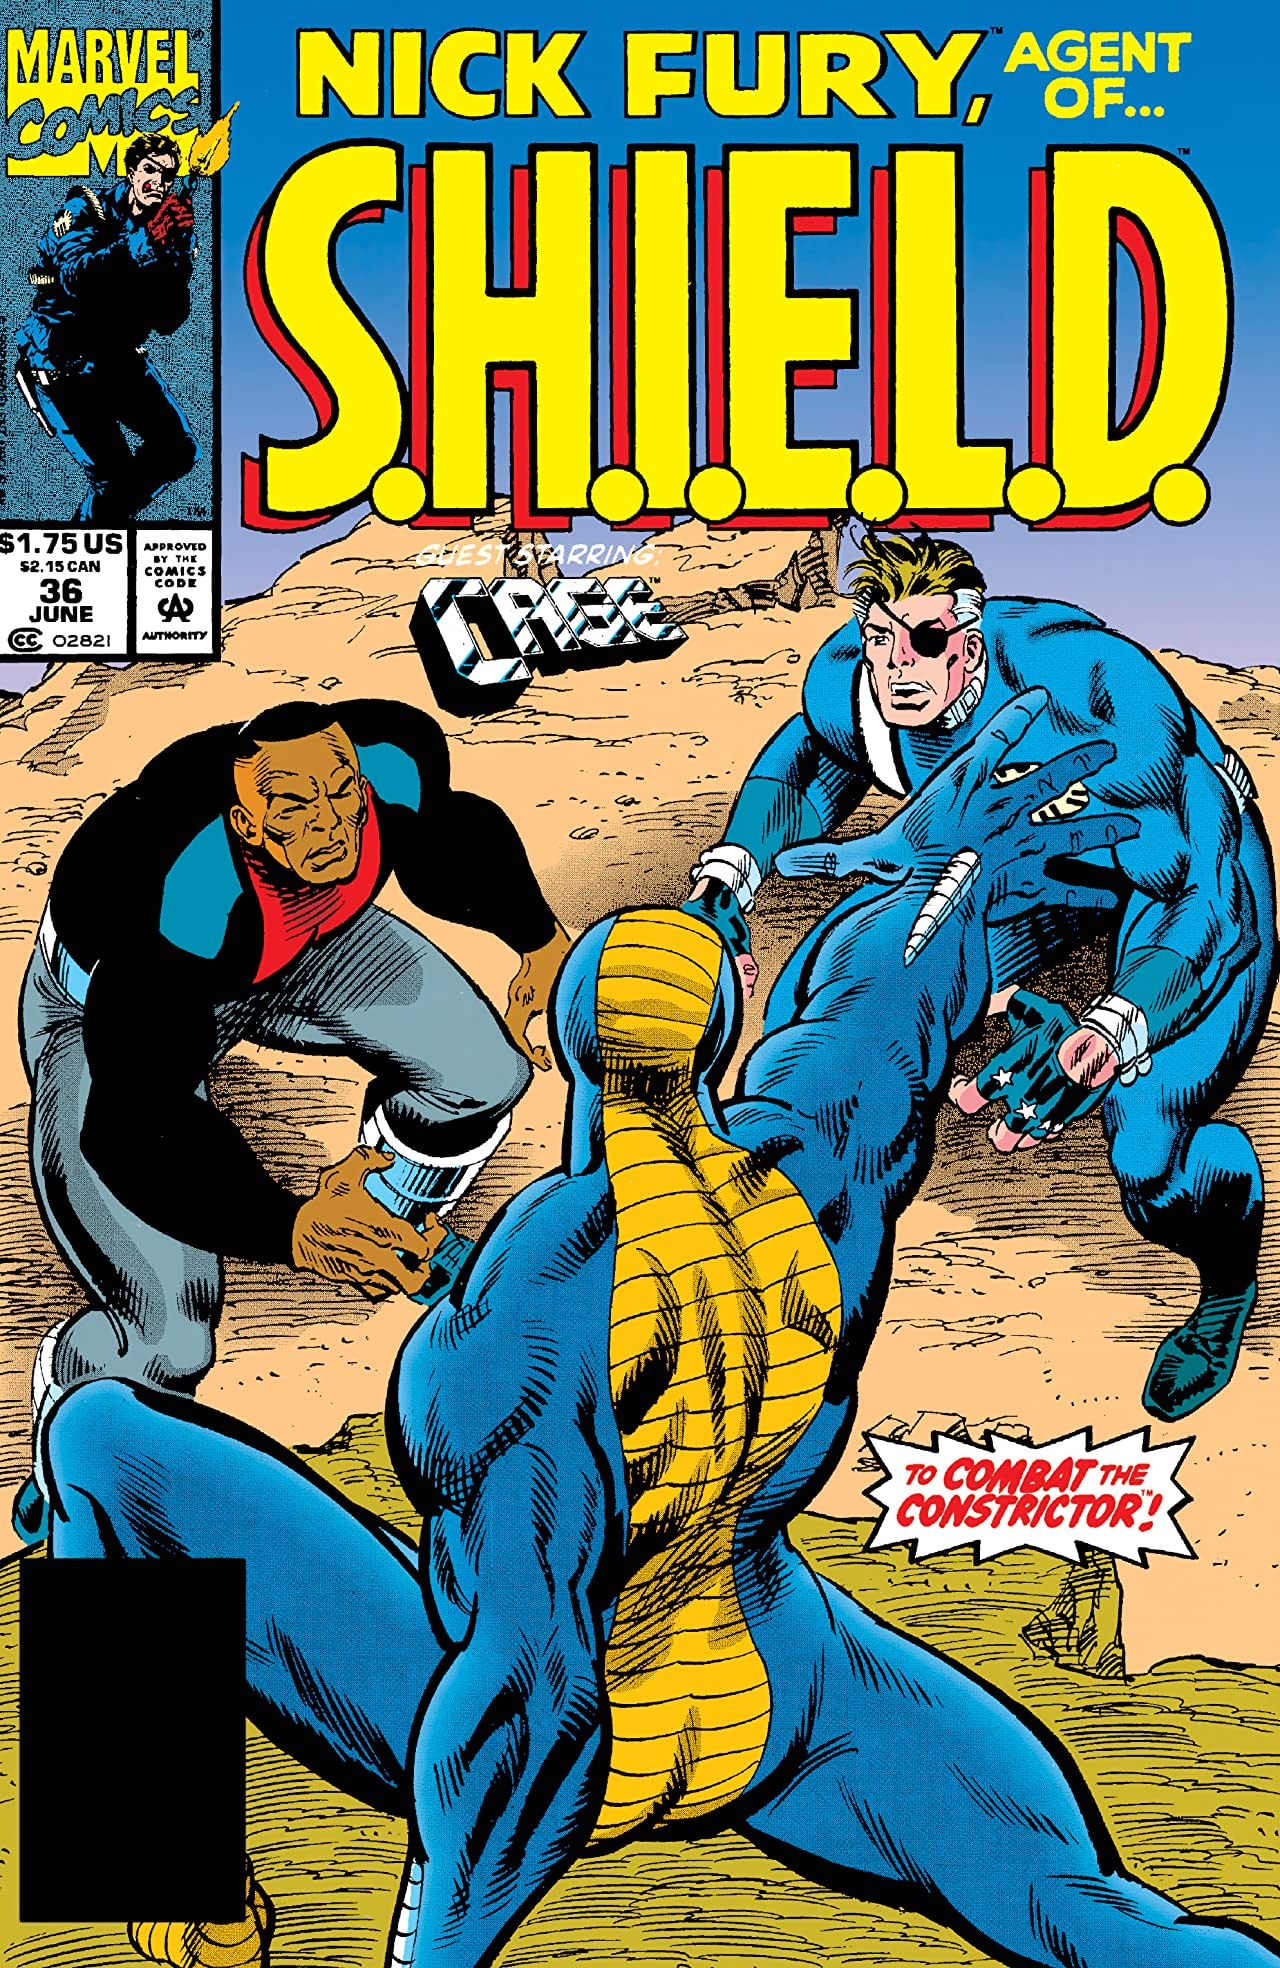 Nick Fury, Agent of S.H.I.E.L.D. (1989-1992) #36